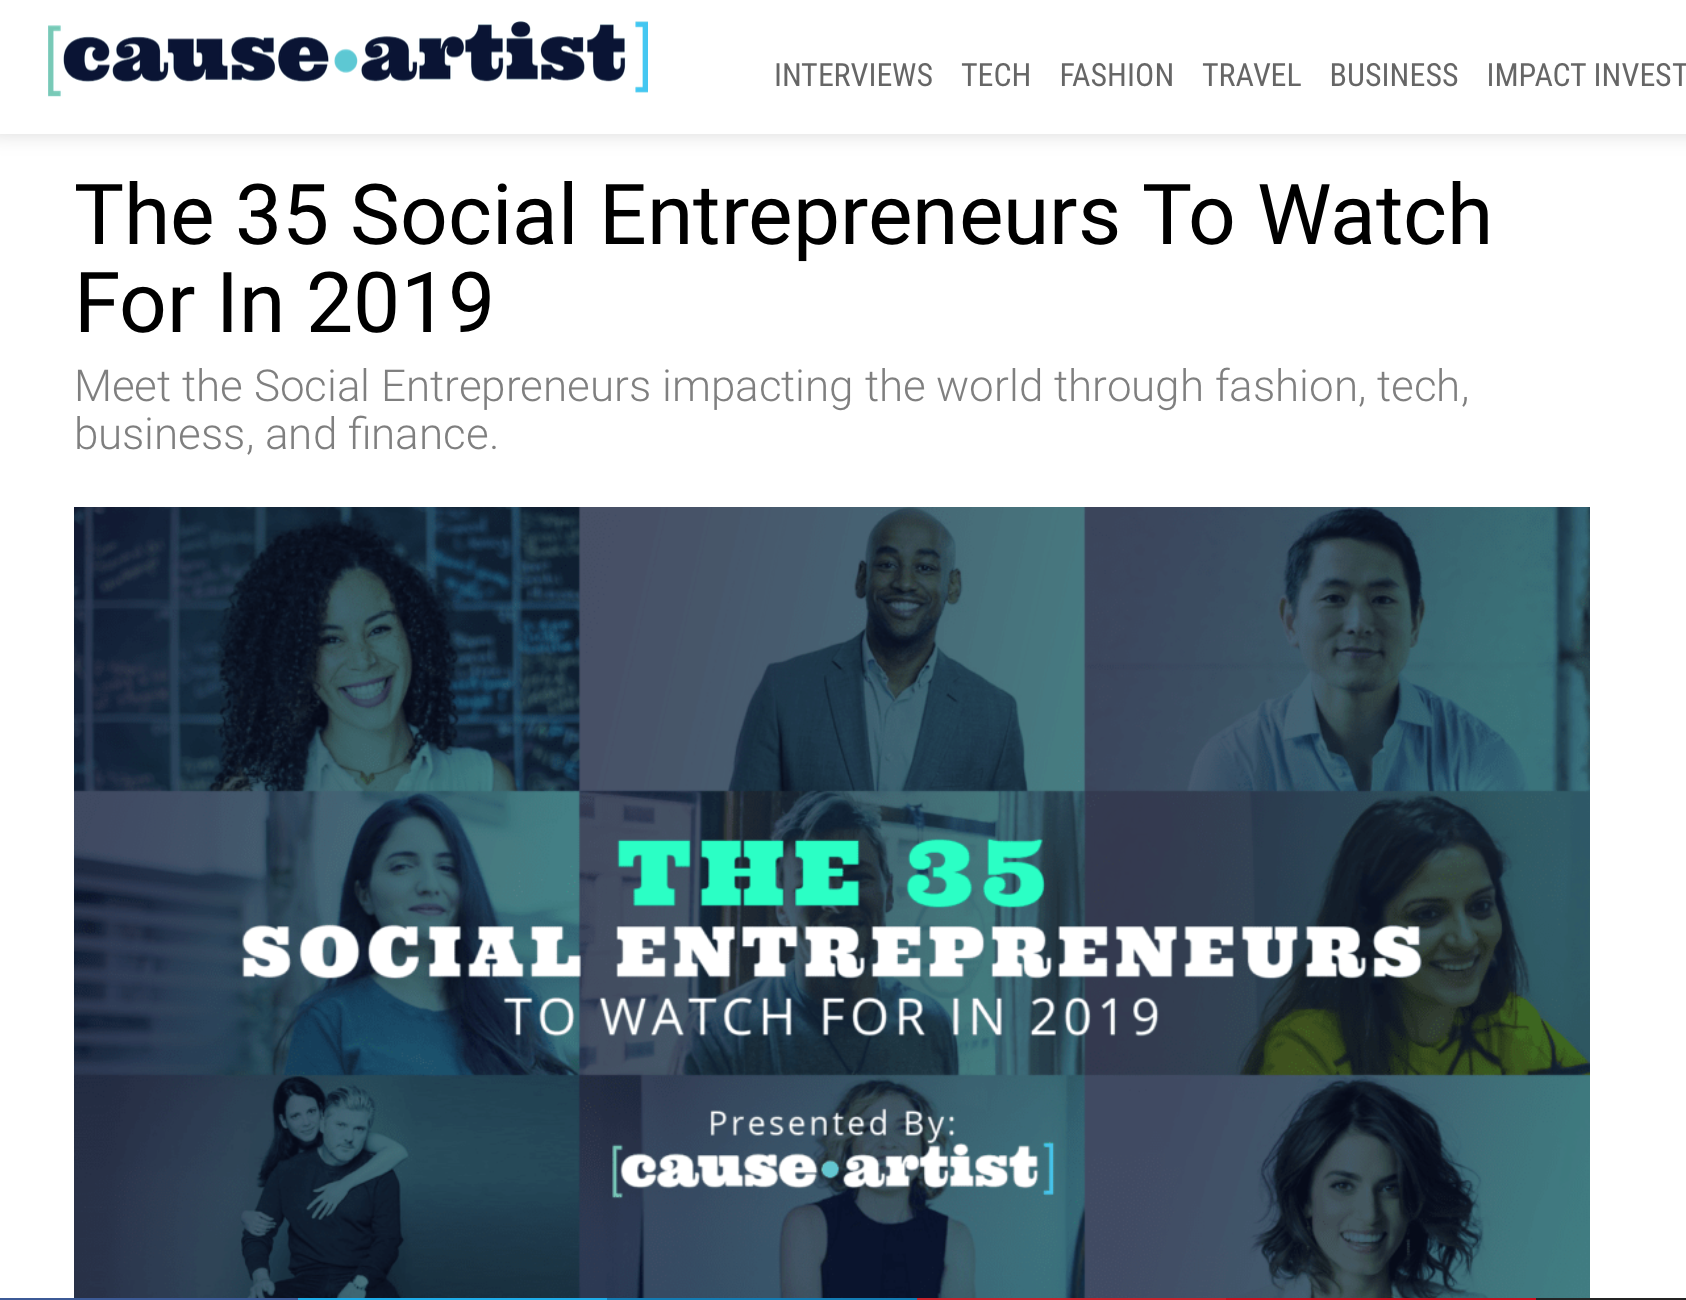 Cause artist.com The 35 Social Entrepreneurs To Watch For In 2019